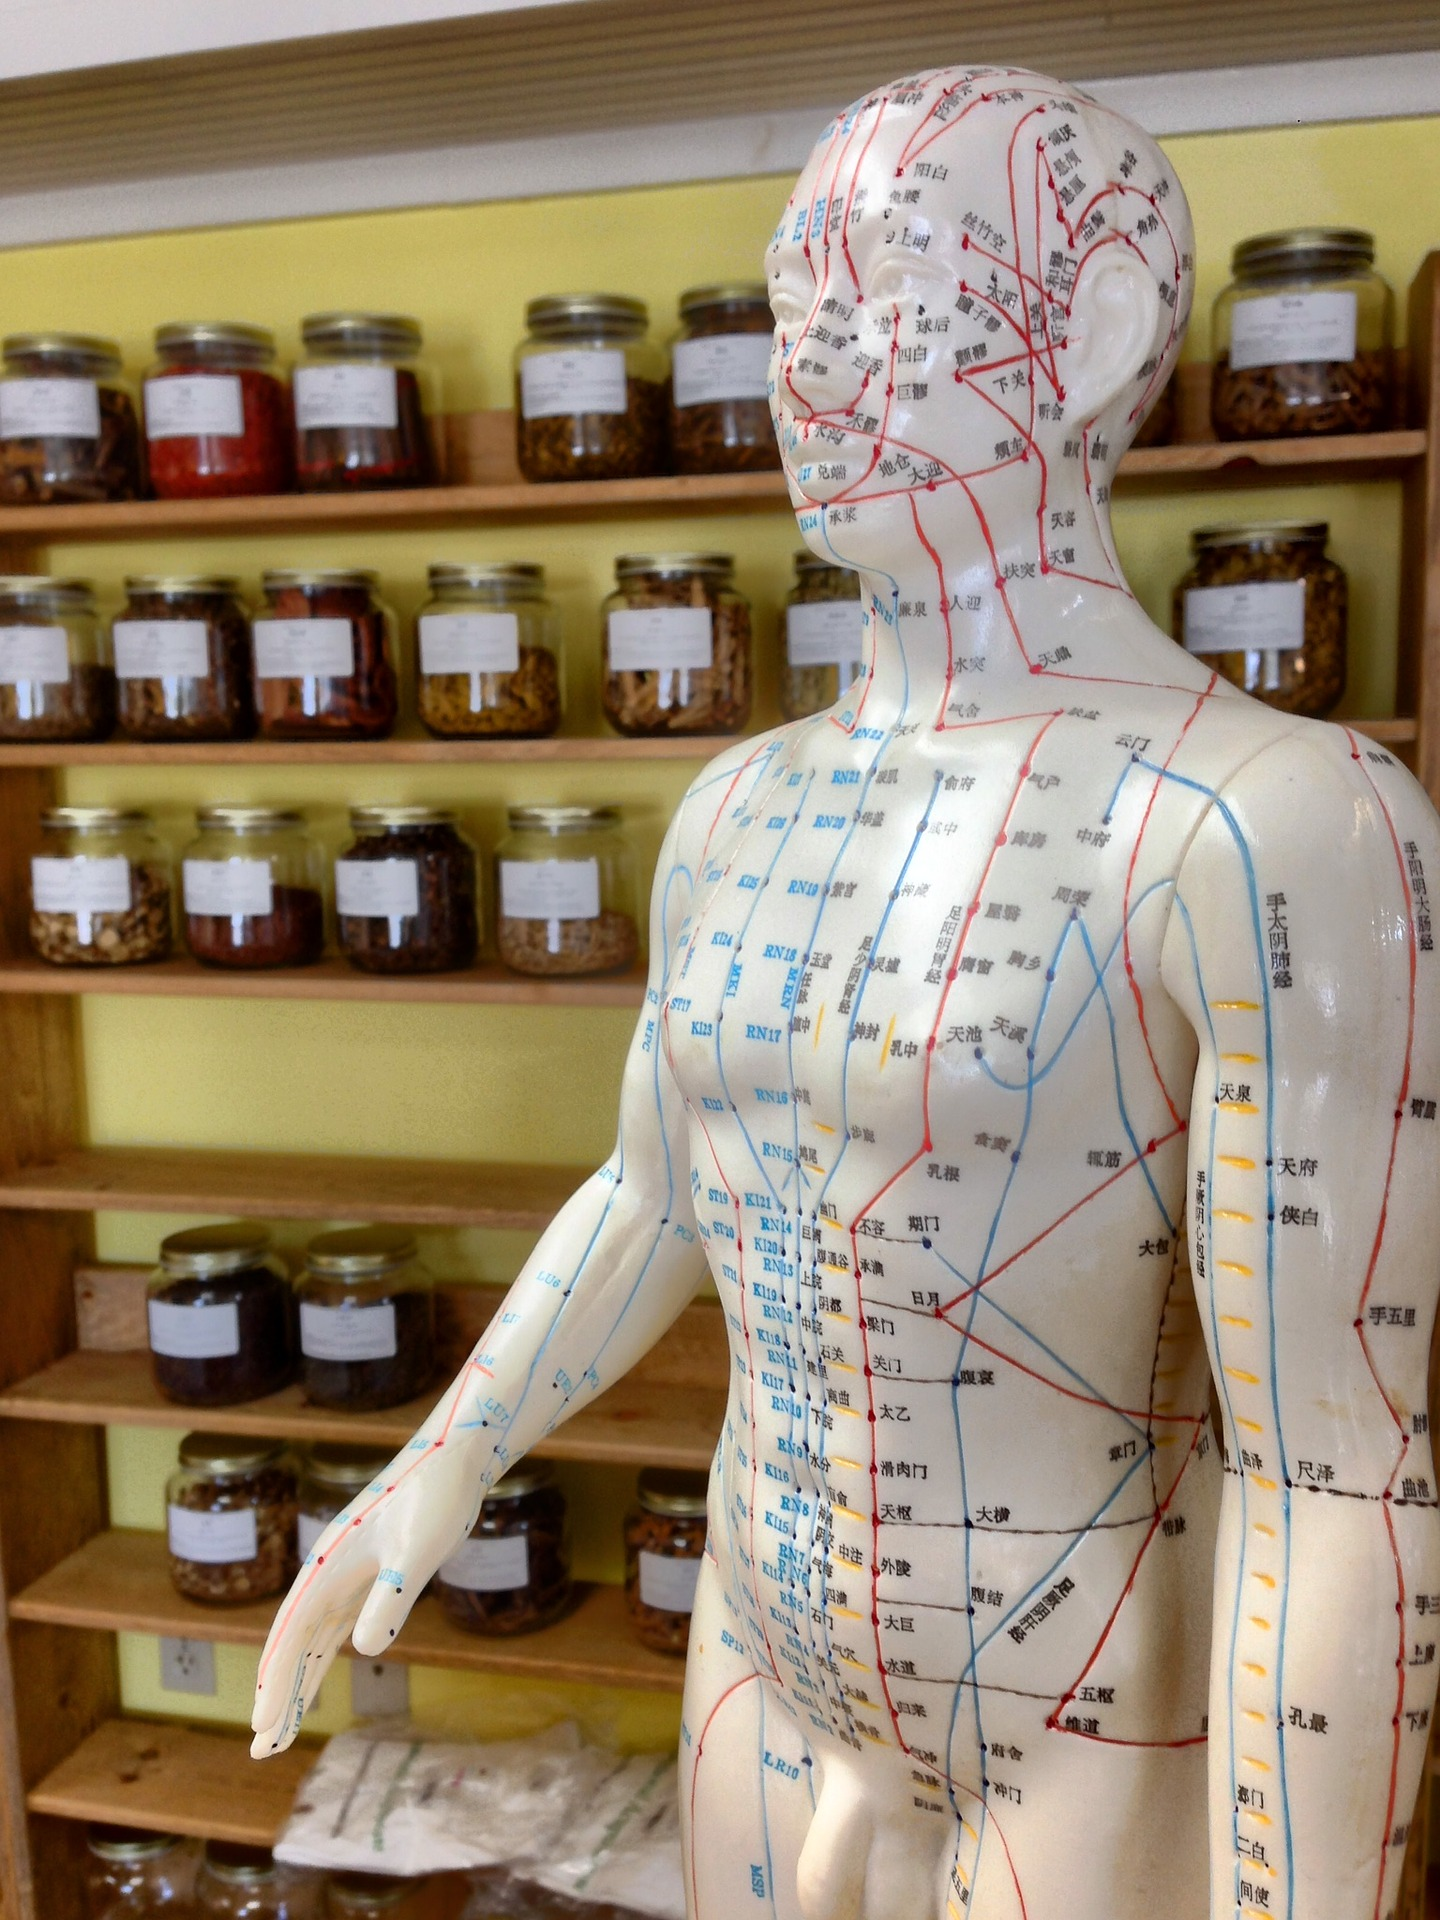 acupuncture and herbs.jpg